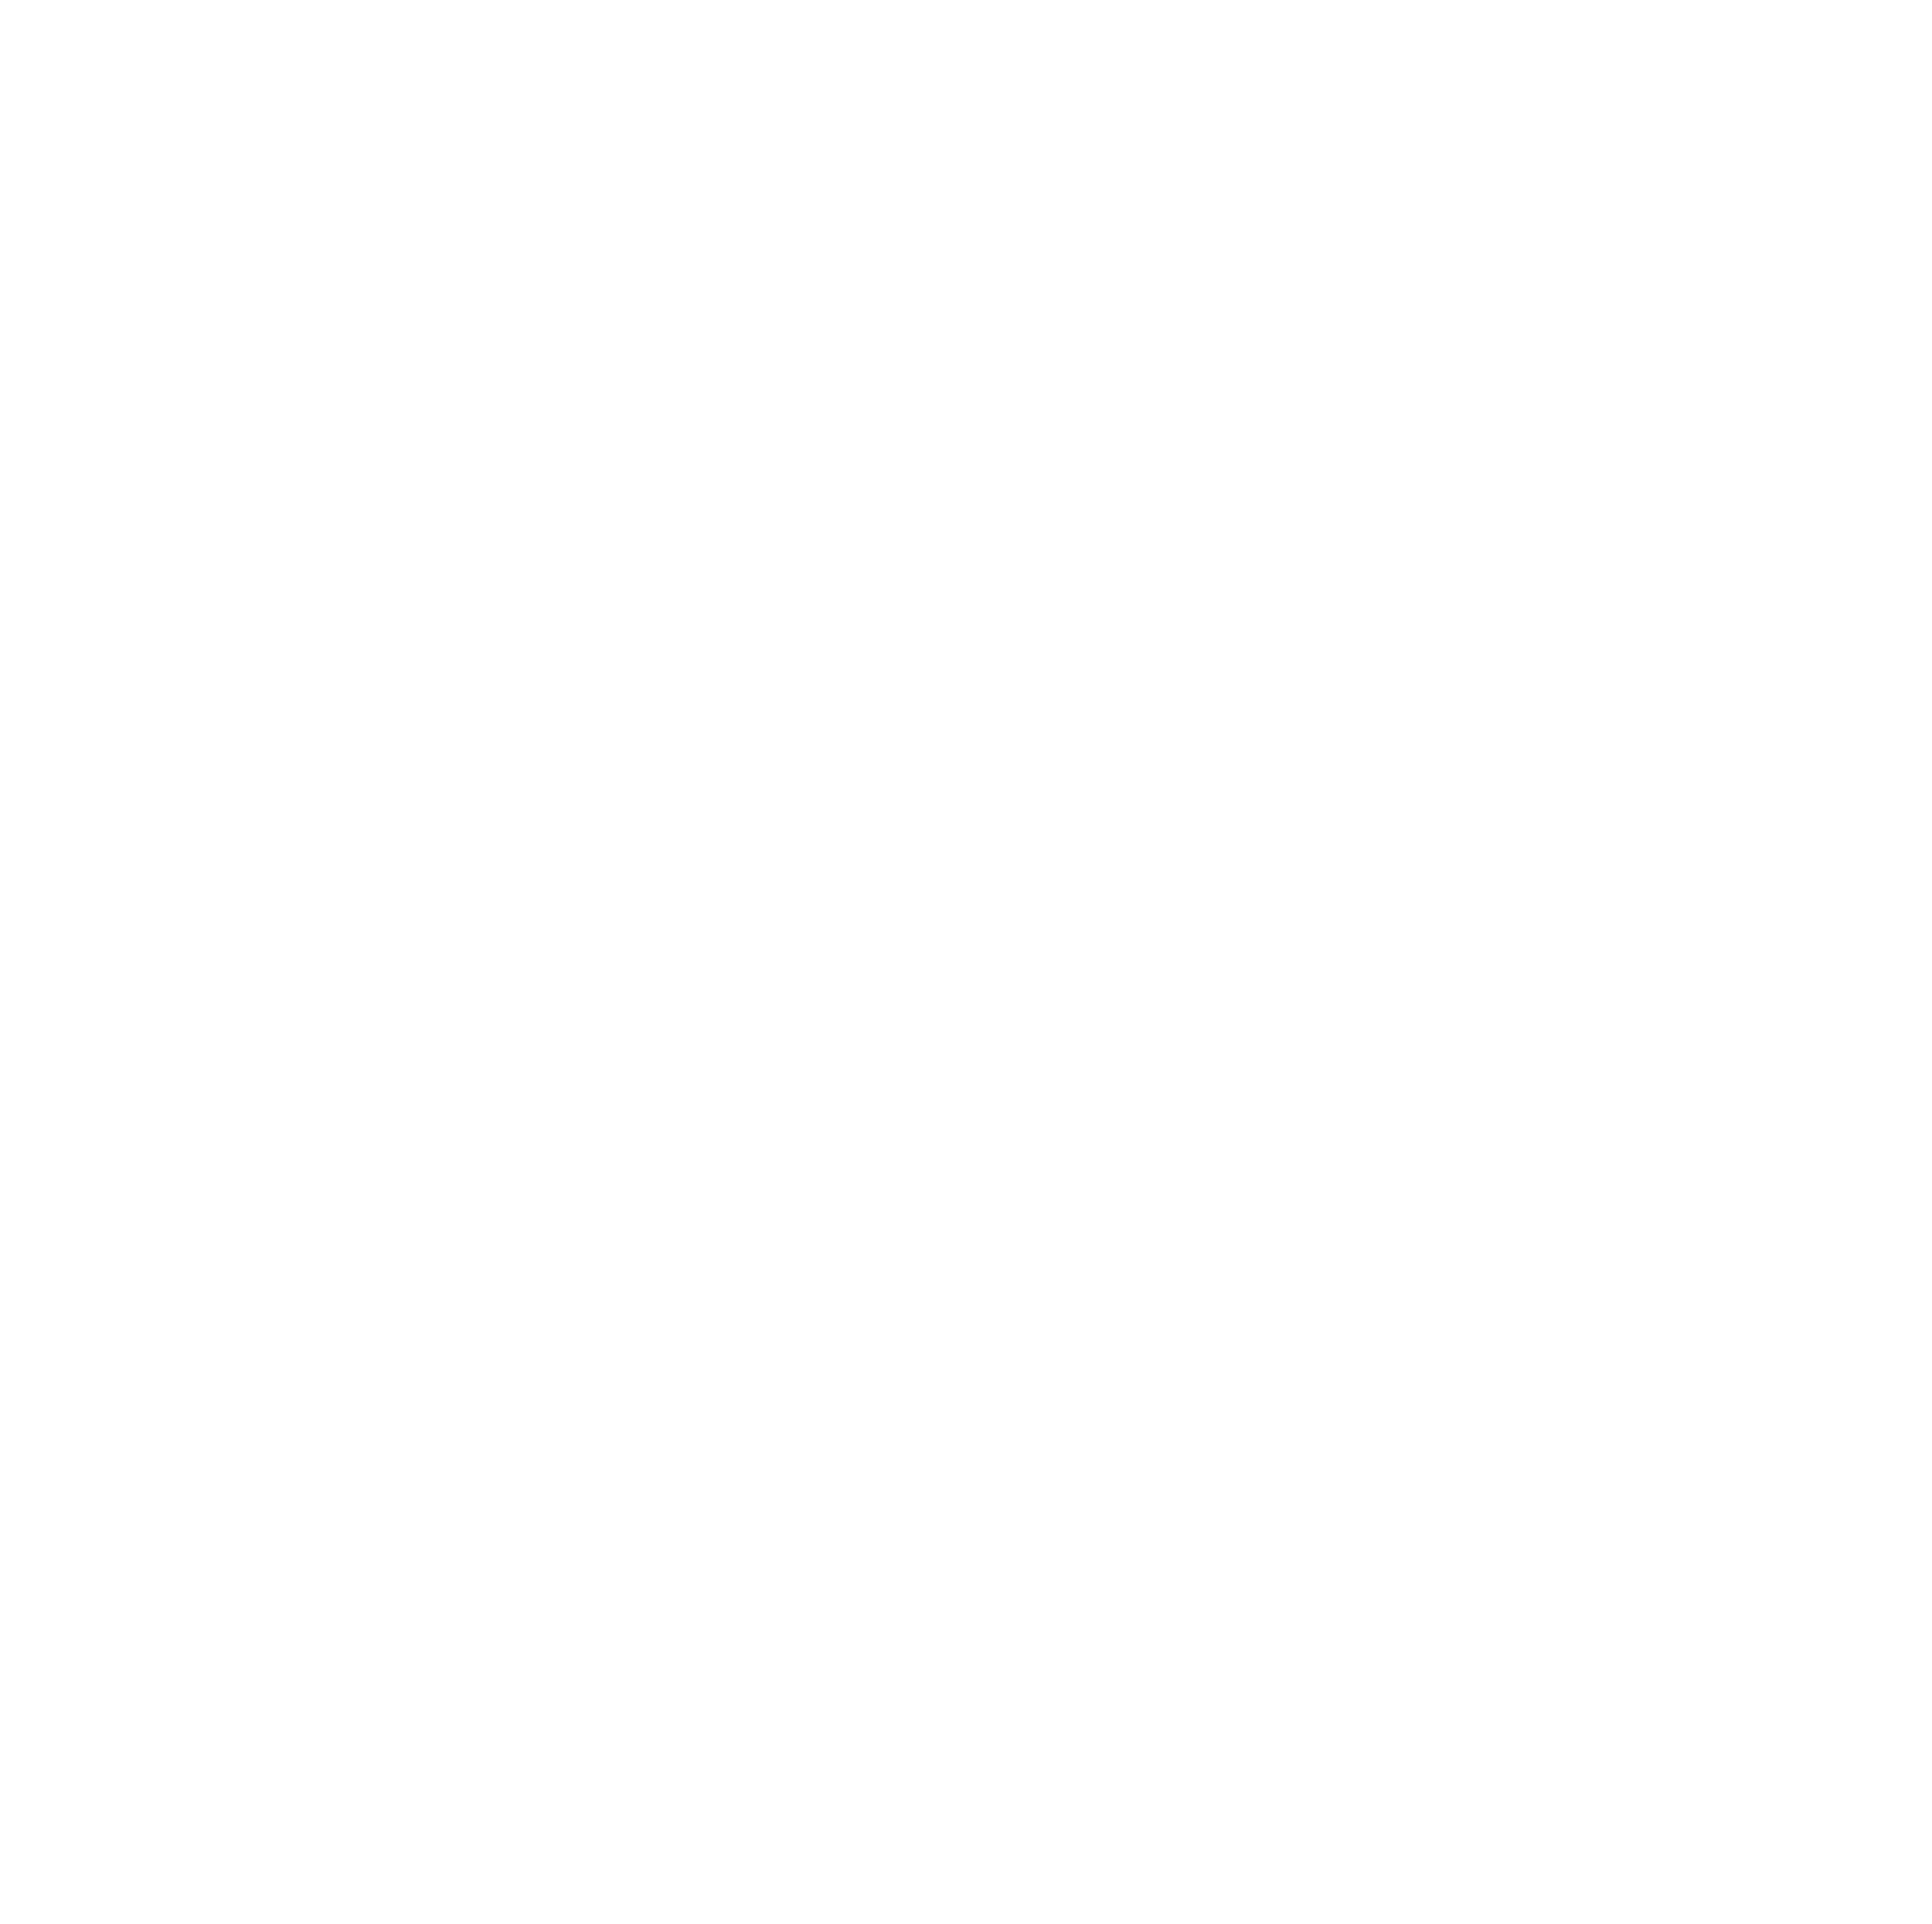 tmd branding texas military department. Black Bedroom Furniture Sets. Home Design Ideas